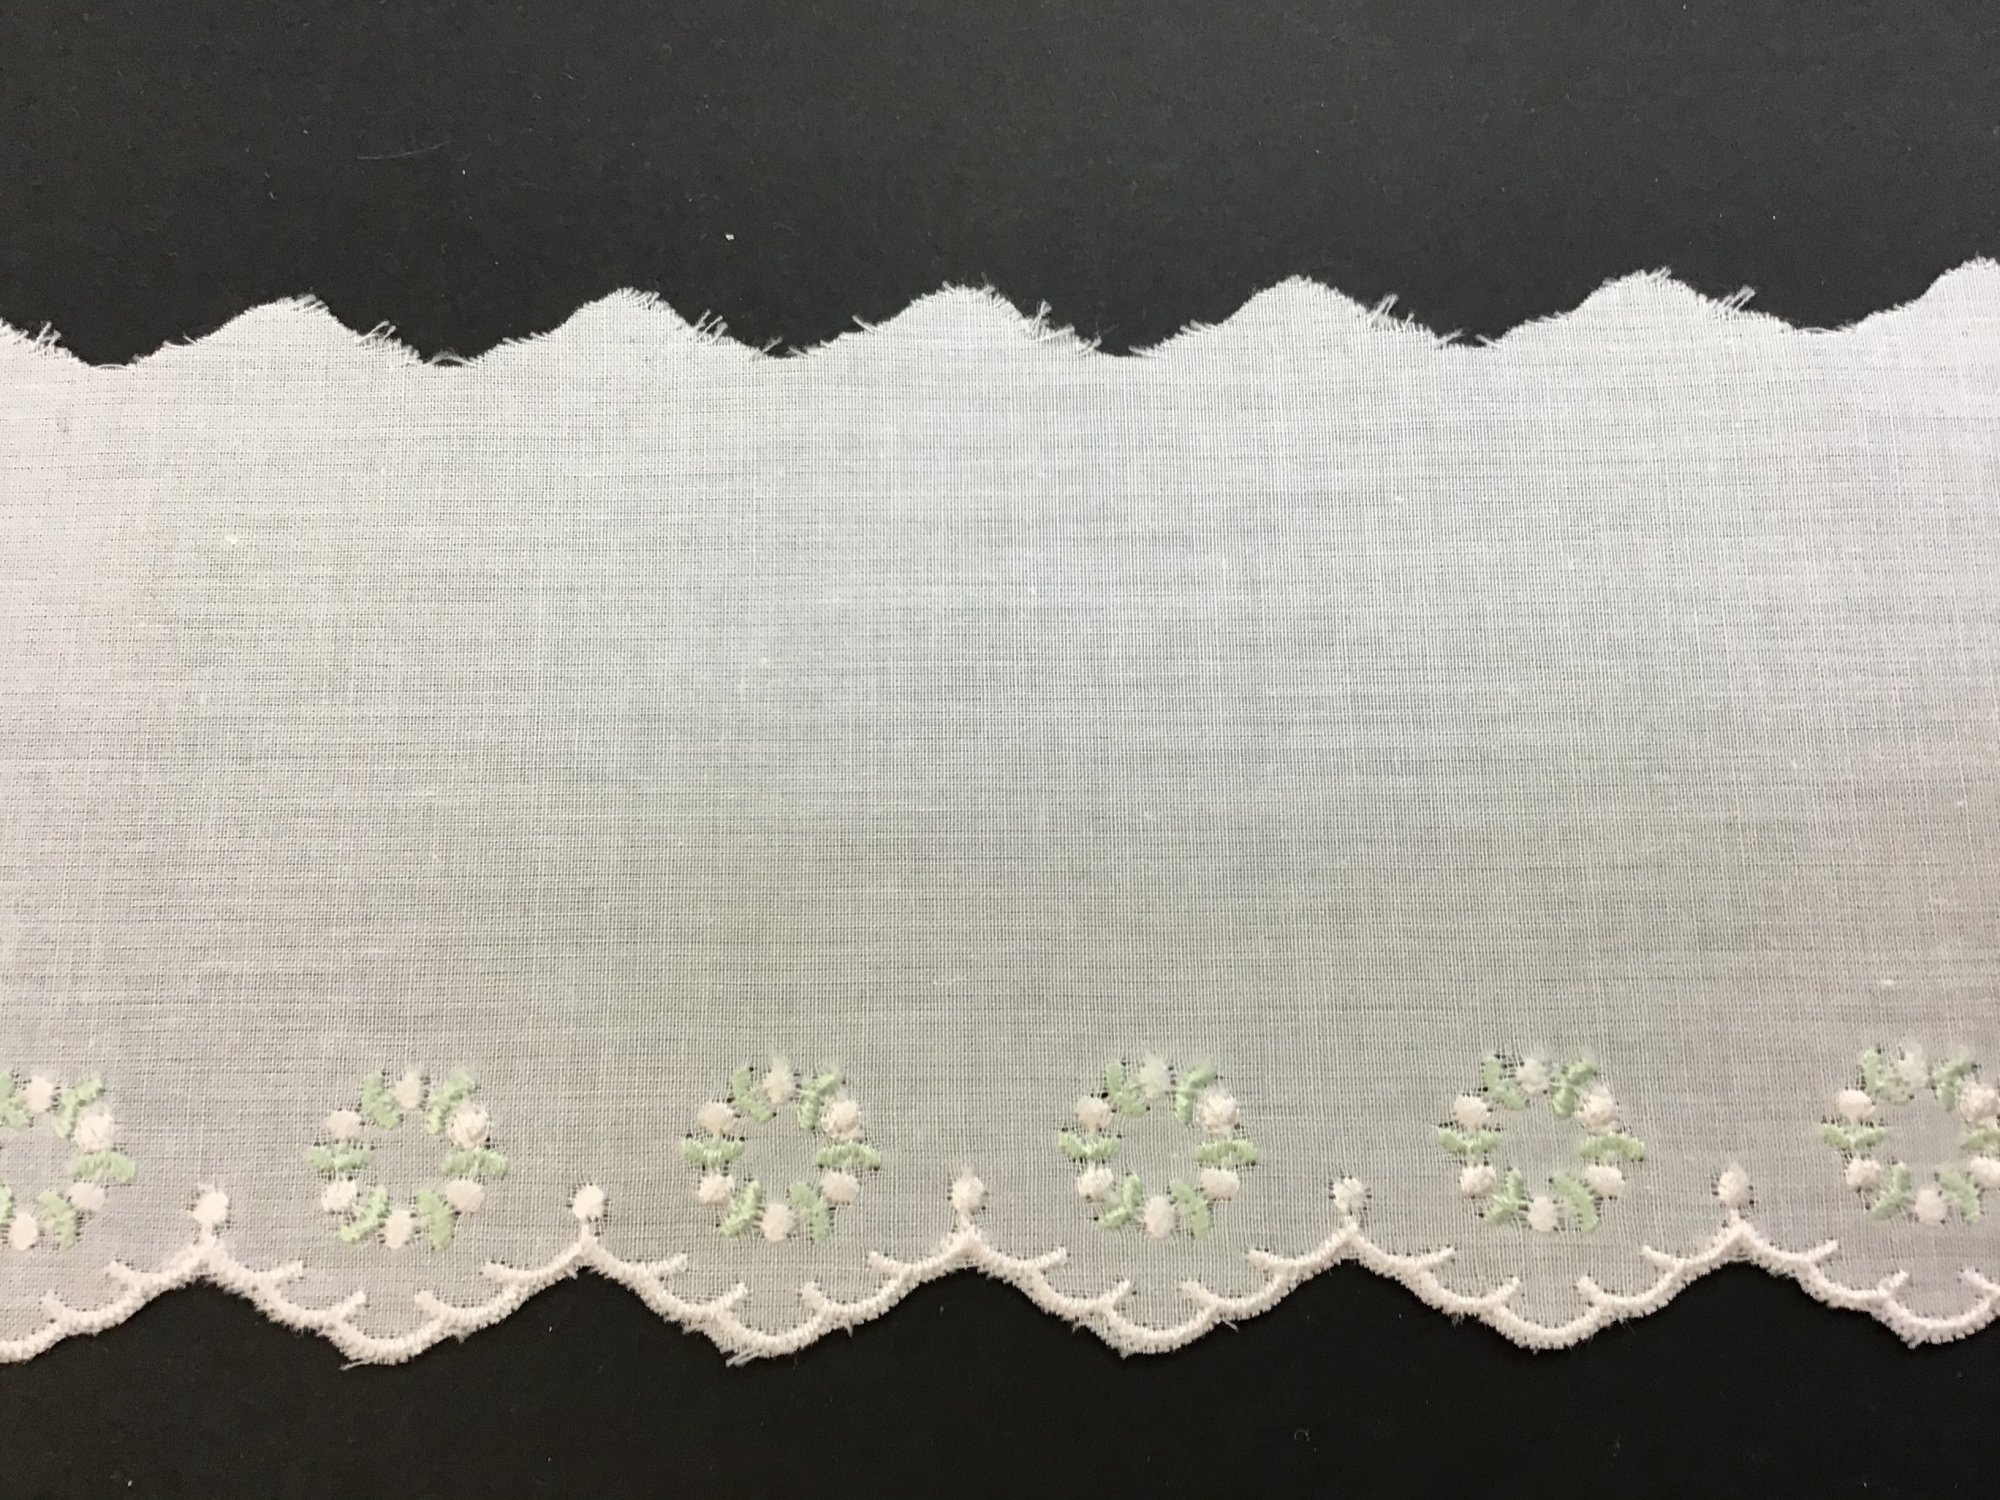 Swiss Embroidered Edging 3 Inches Pink and Green 69148-02A